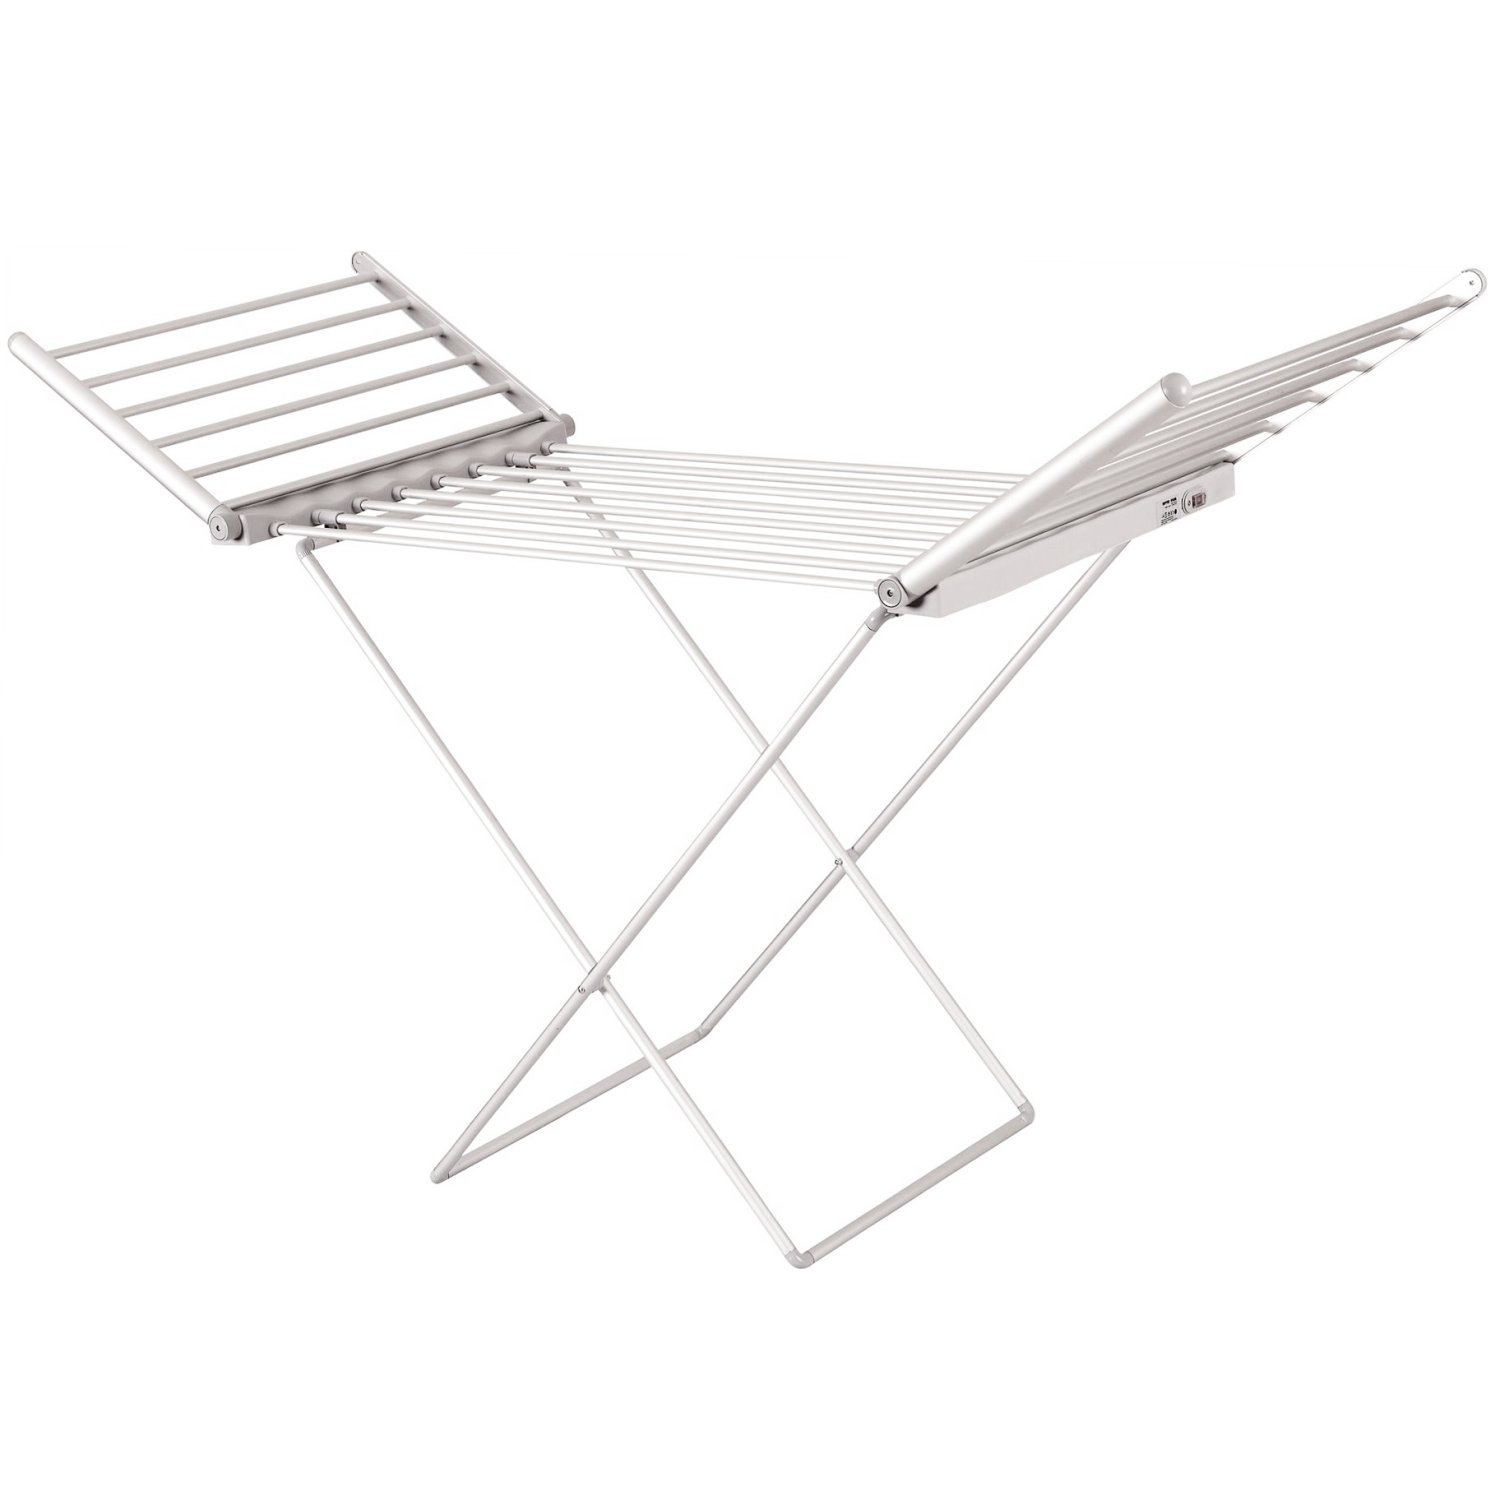 New Electric Extendable Heated Folding Clothes Horse